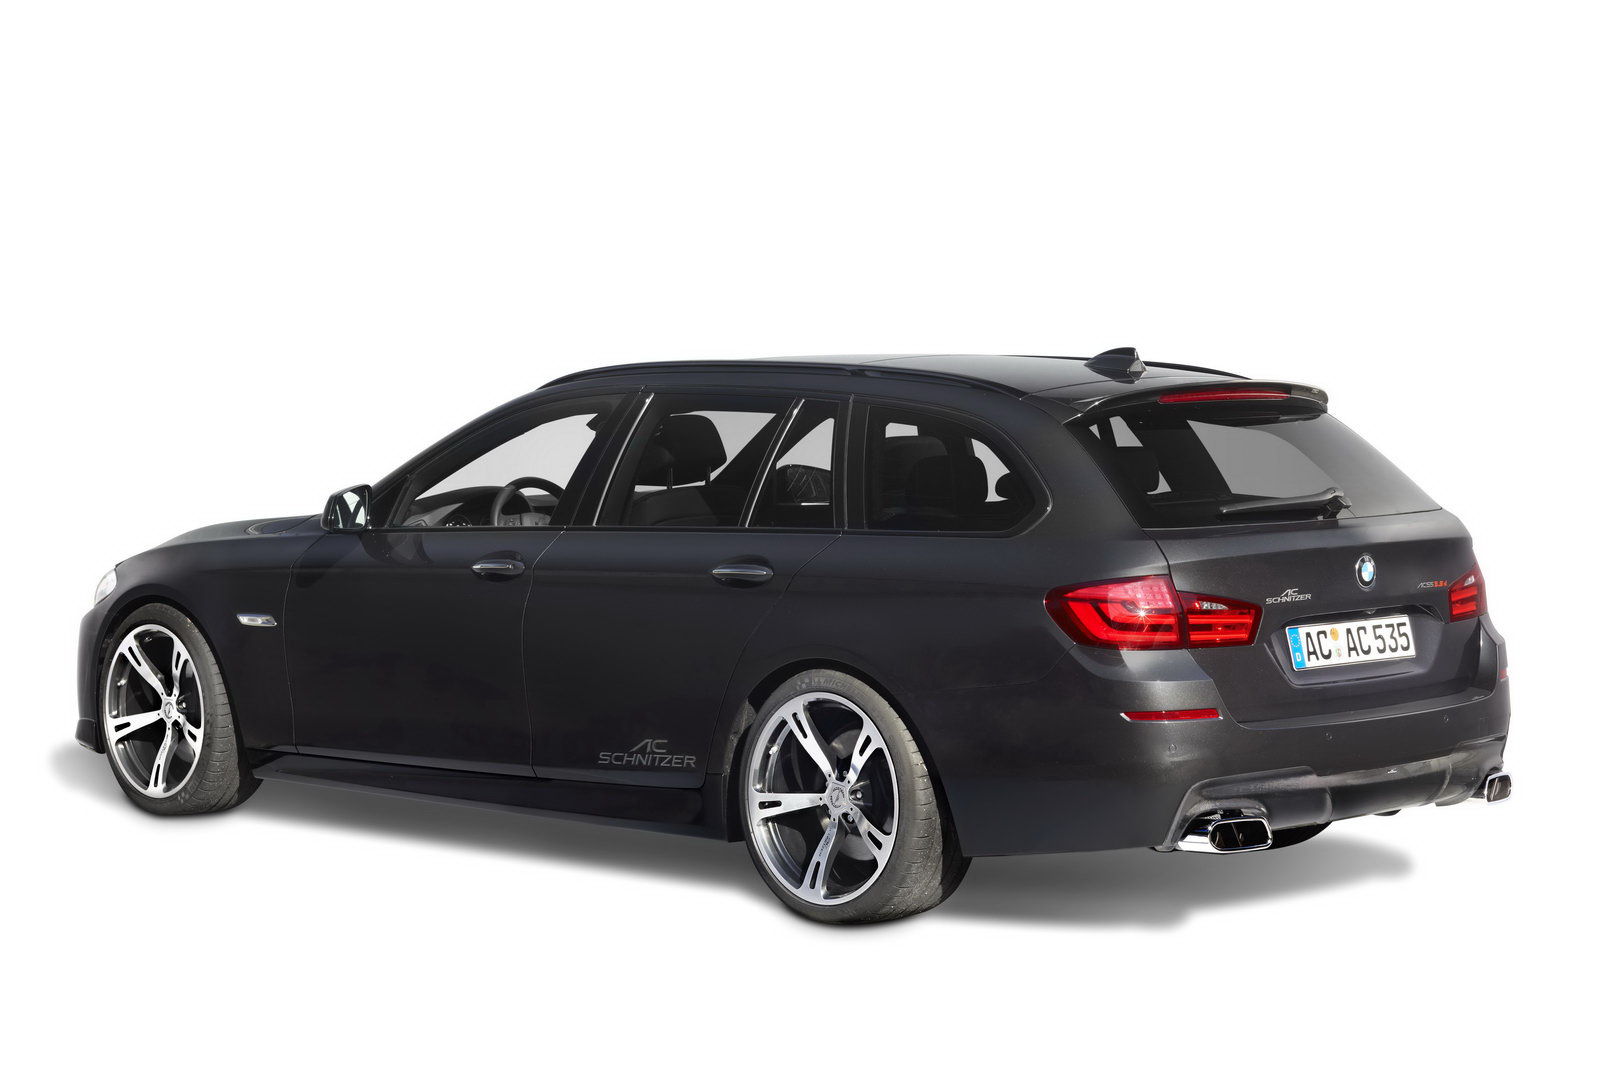 bmw 5 series touring gets ac schnitzer modification kit. Black Bedroom Furniture Sets. Home Design Ideas